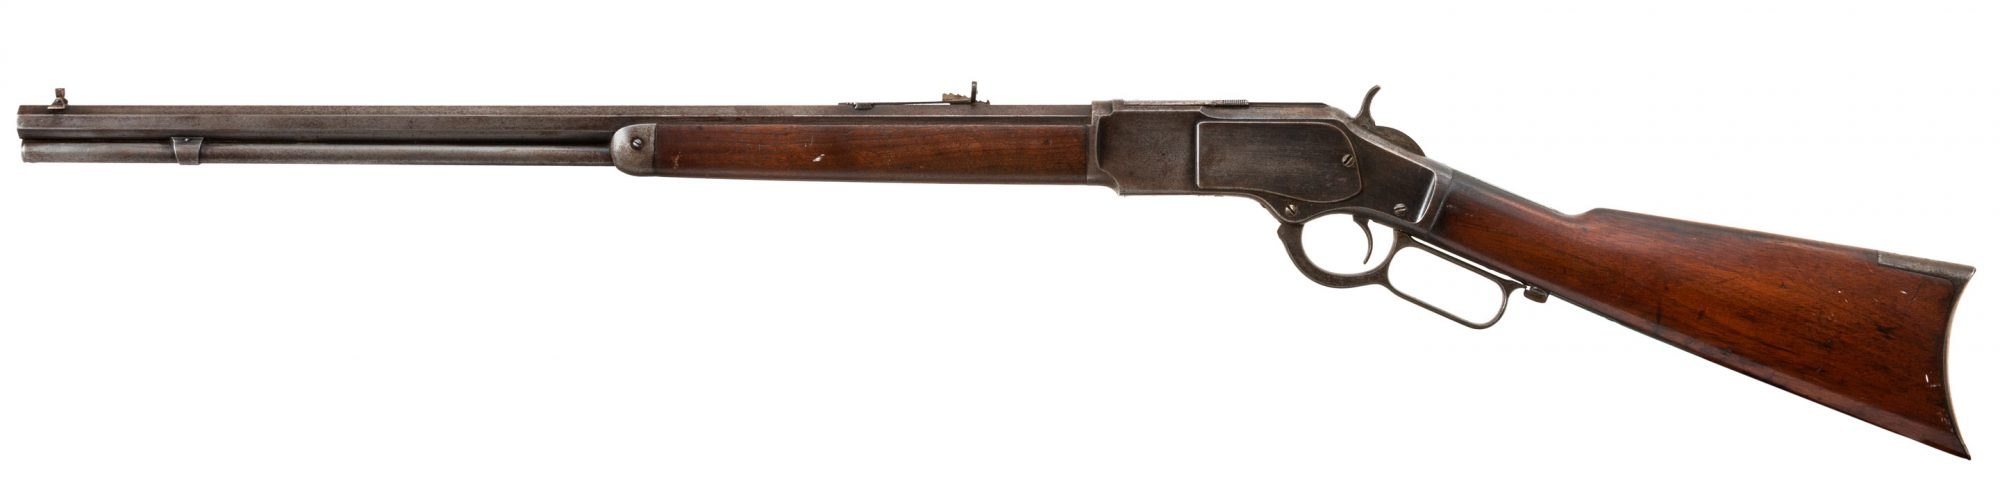 Photo of a pre-owned Winchester 1873, for sale by Turnbull Restoration of Bloomfield, NY